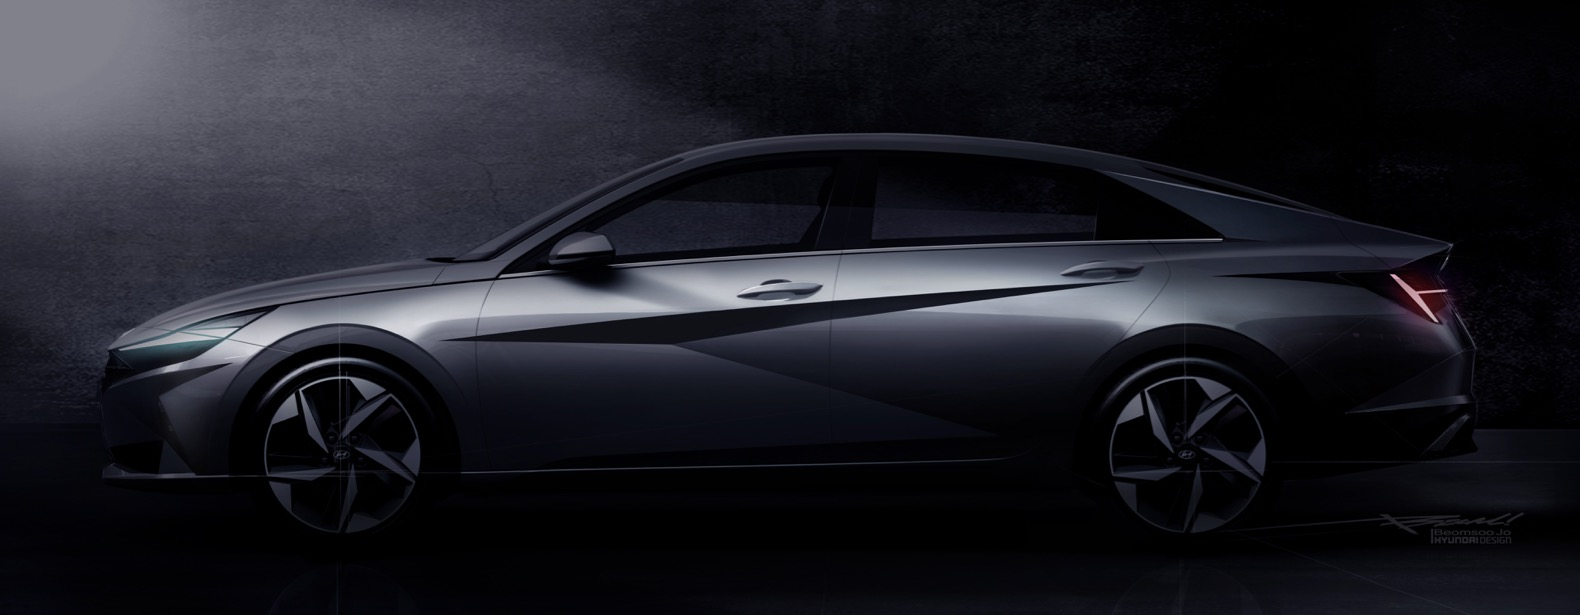 2021 hyundai elantra teased ahead of its debut on march 17